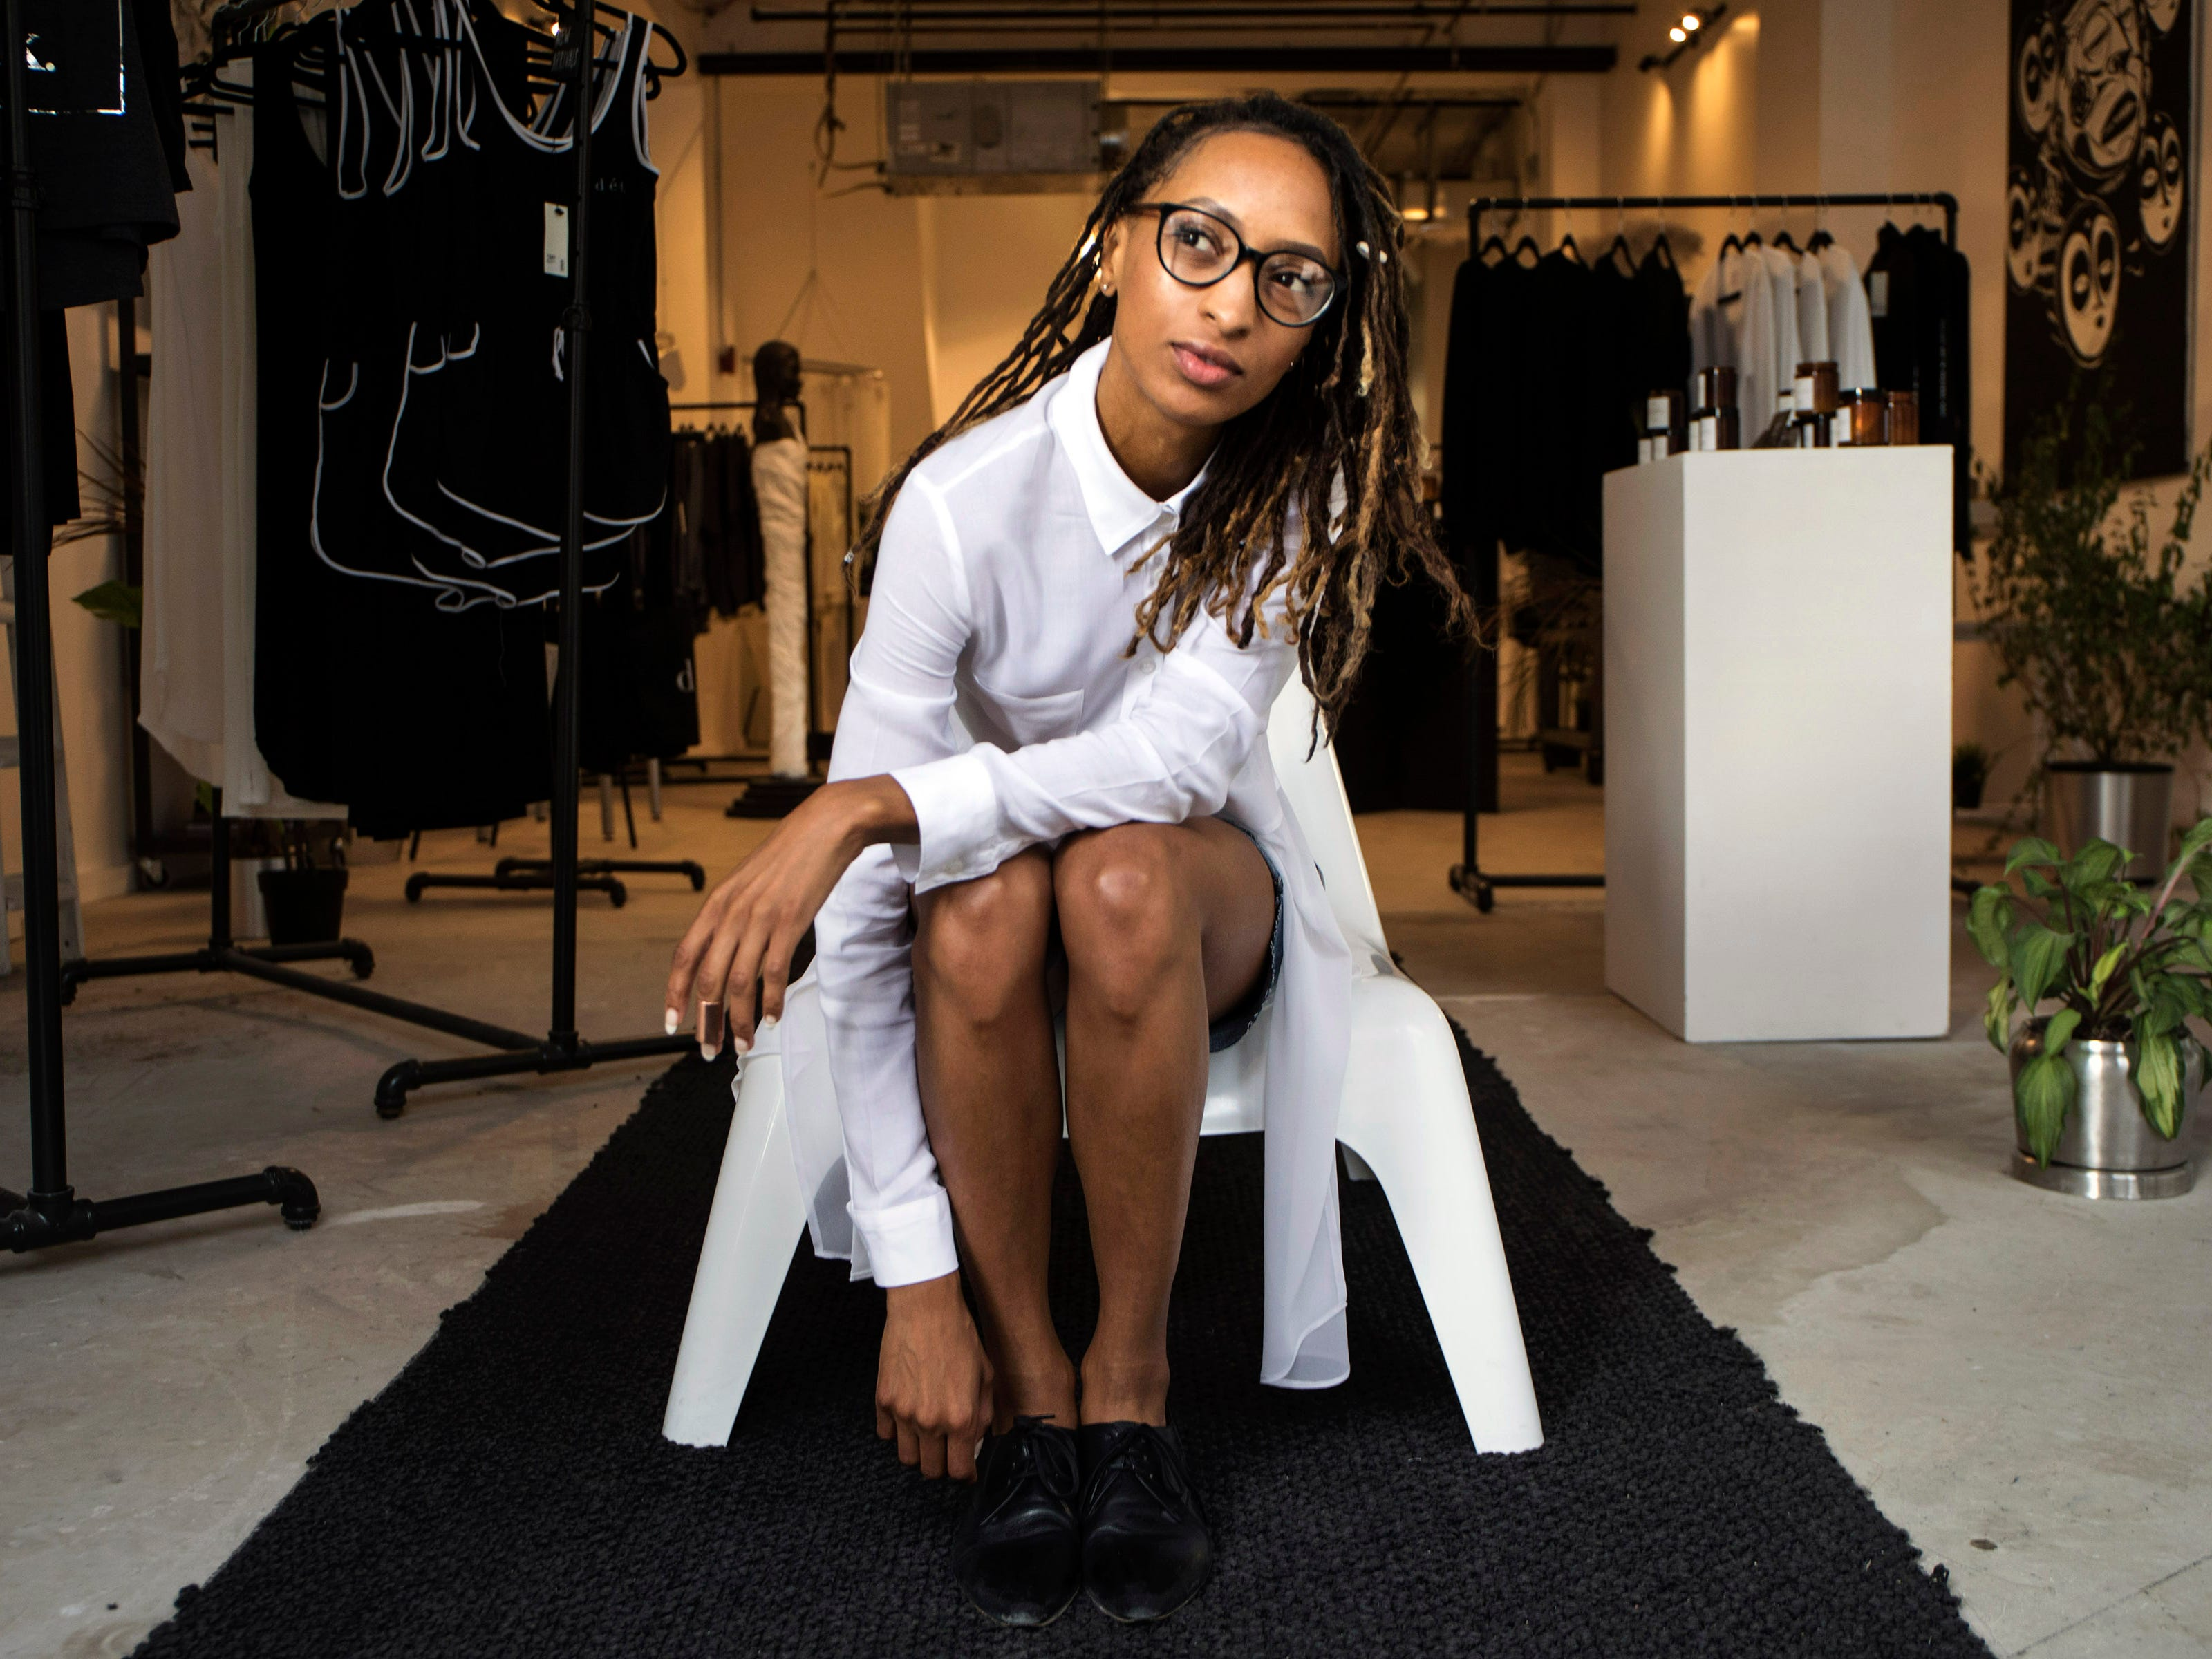 Roslyn Karamoko, 33, is the founder and CEO of Detroit is the New Black, Wednesday, August 29, 2018.